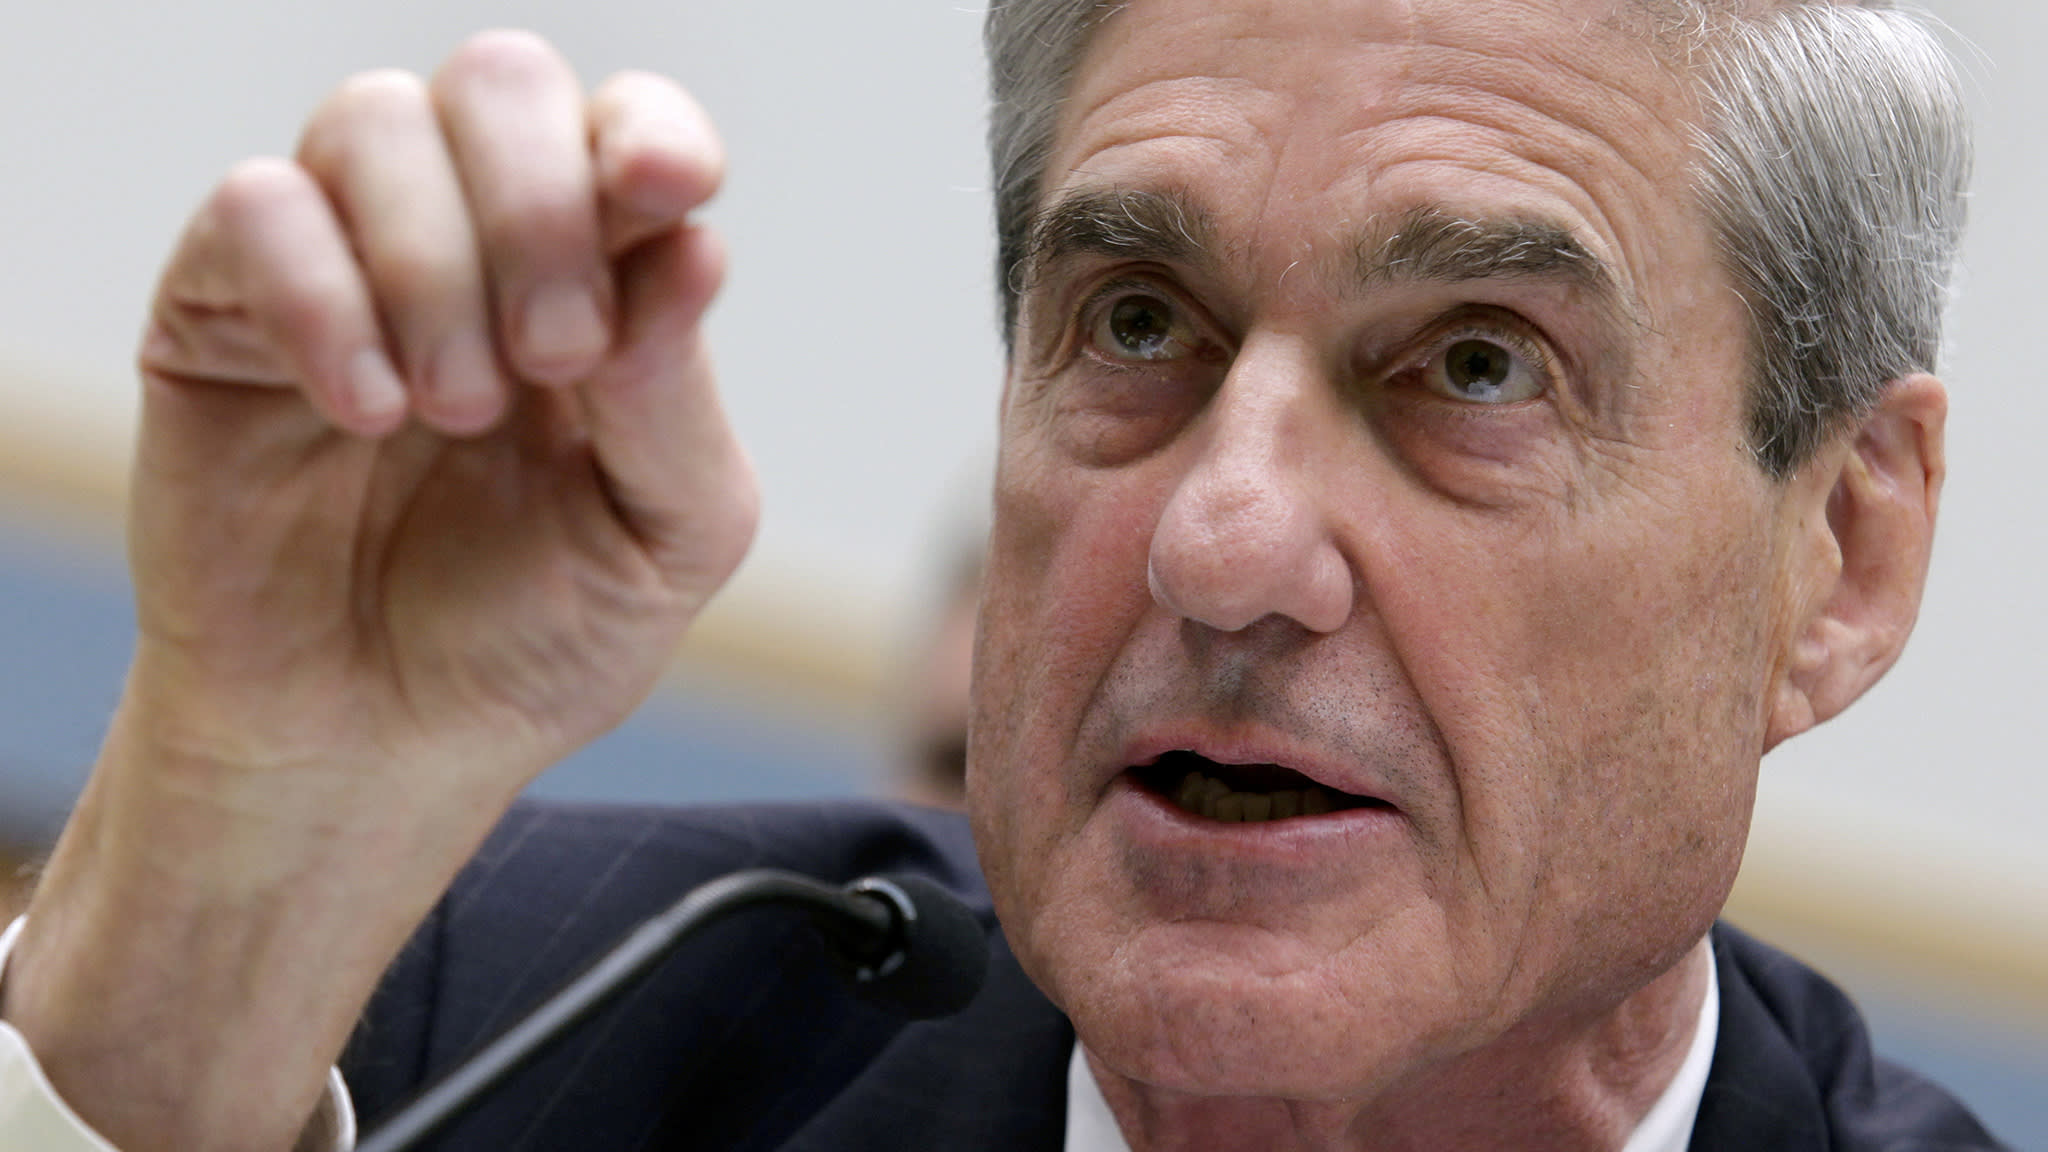 Mueller asks FBI to probe claims that women were paid to discredit him